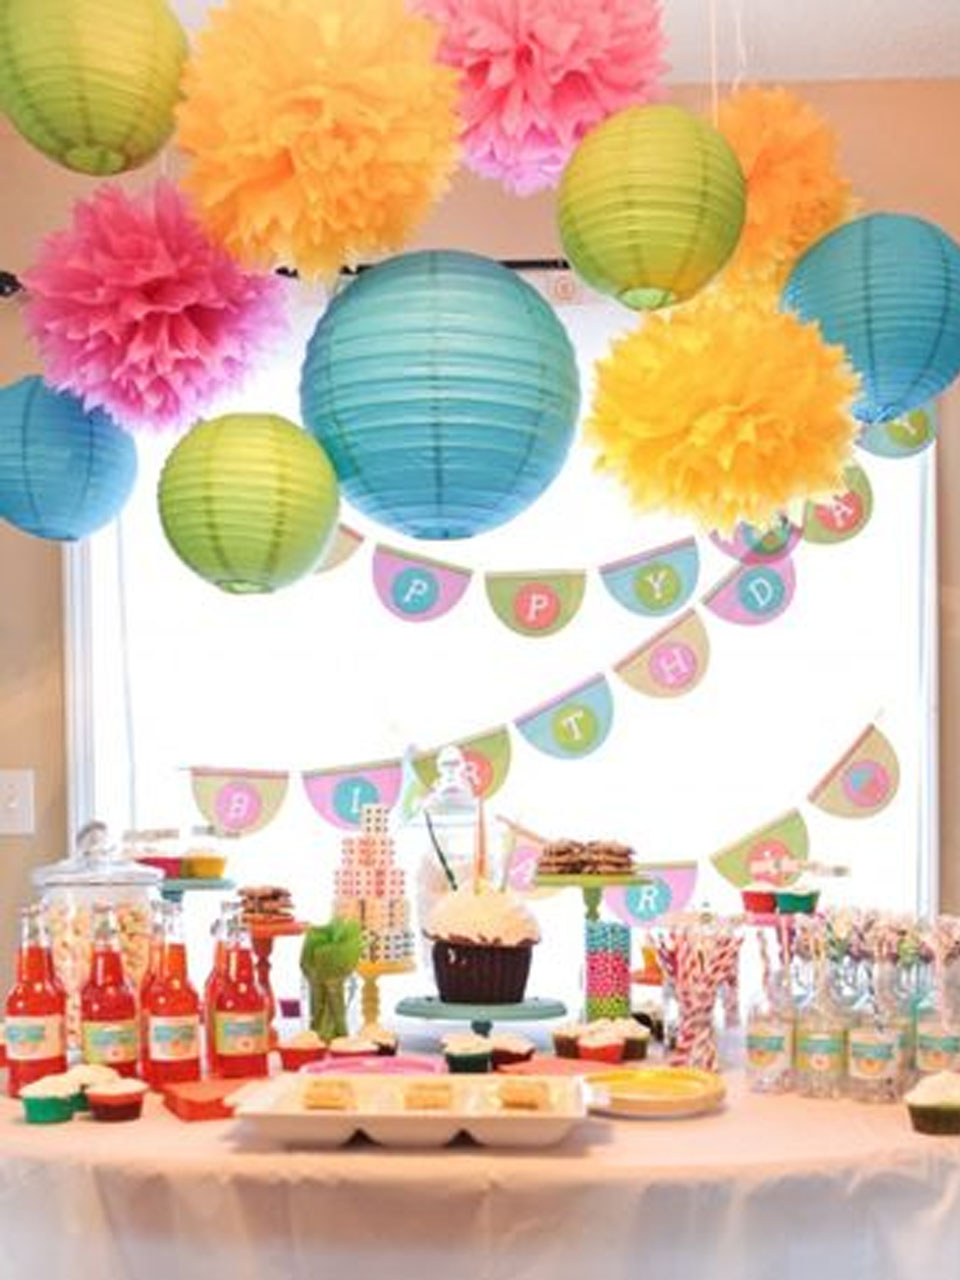 12 manualidades con pompones para fiestas for Fiestas ideas originales